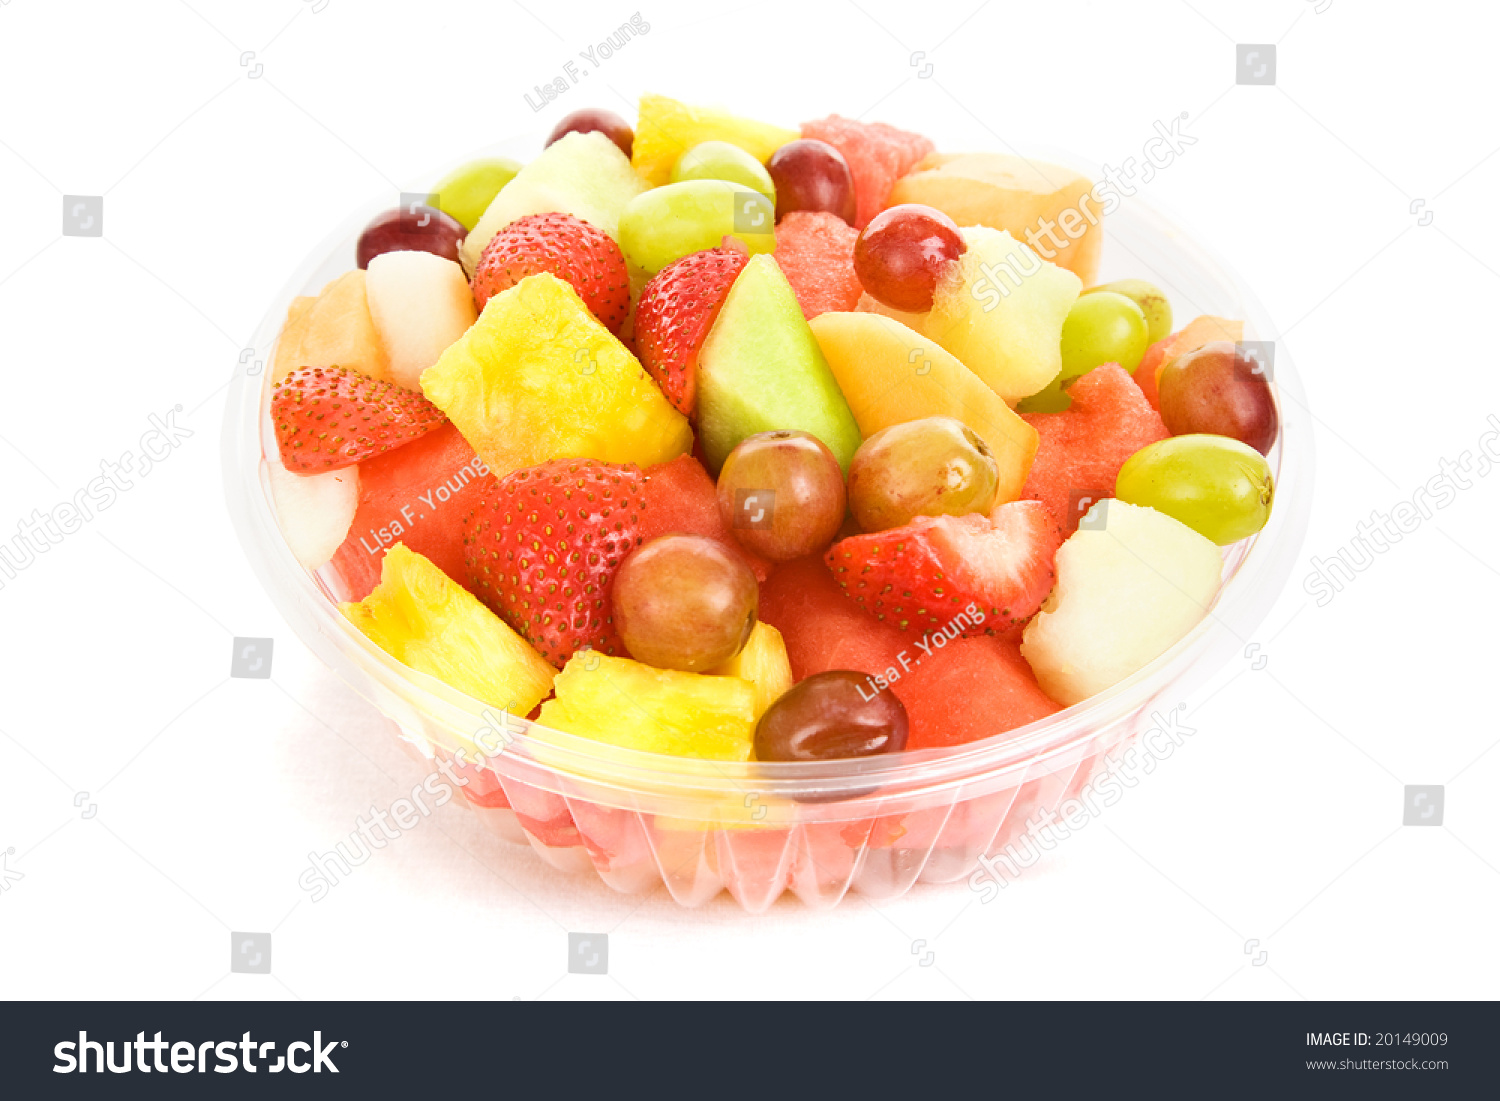 Colorful Fruit Bowl Bowl Of Colorful Delicious Fruit Salad Isolated On White